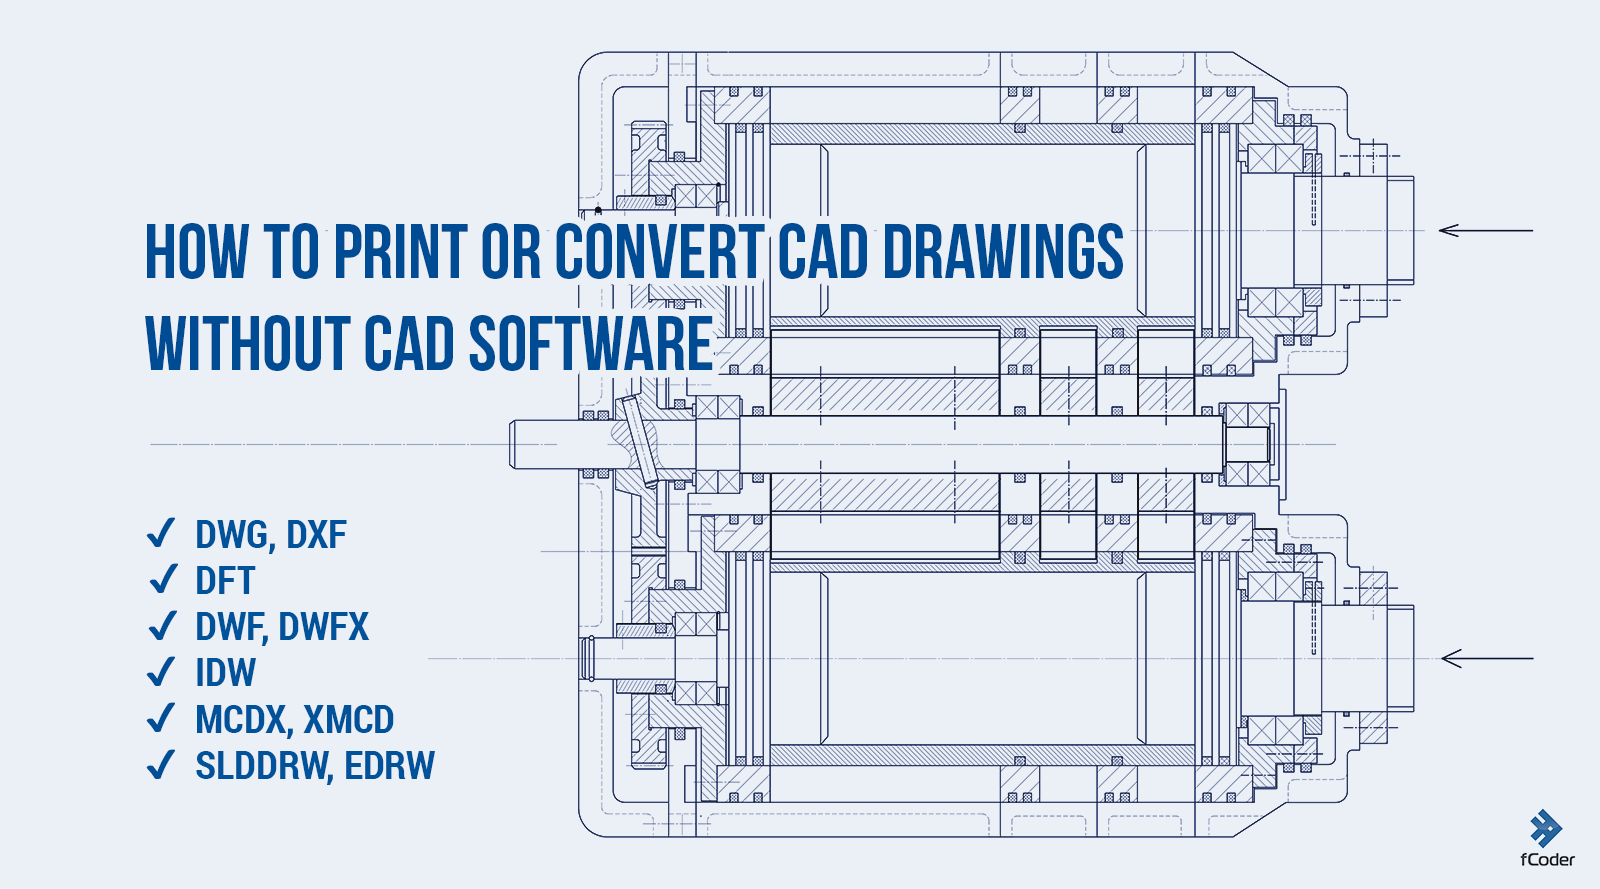 How to Print or Convert DWG files to PDF without AutoCAD with FolderMill